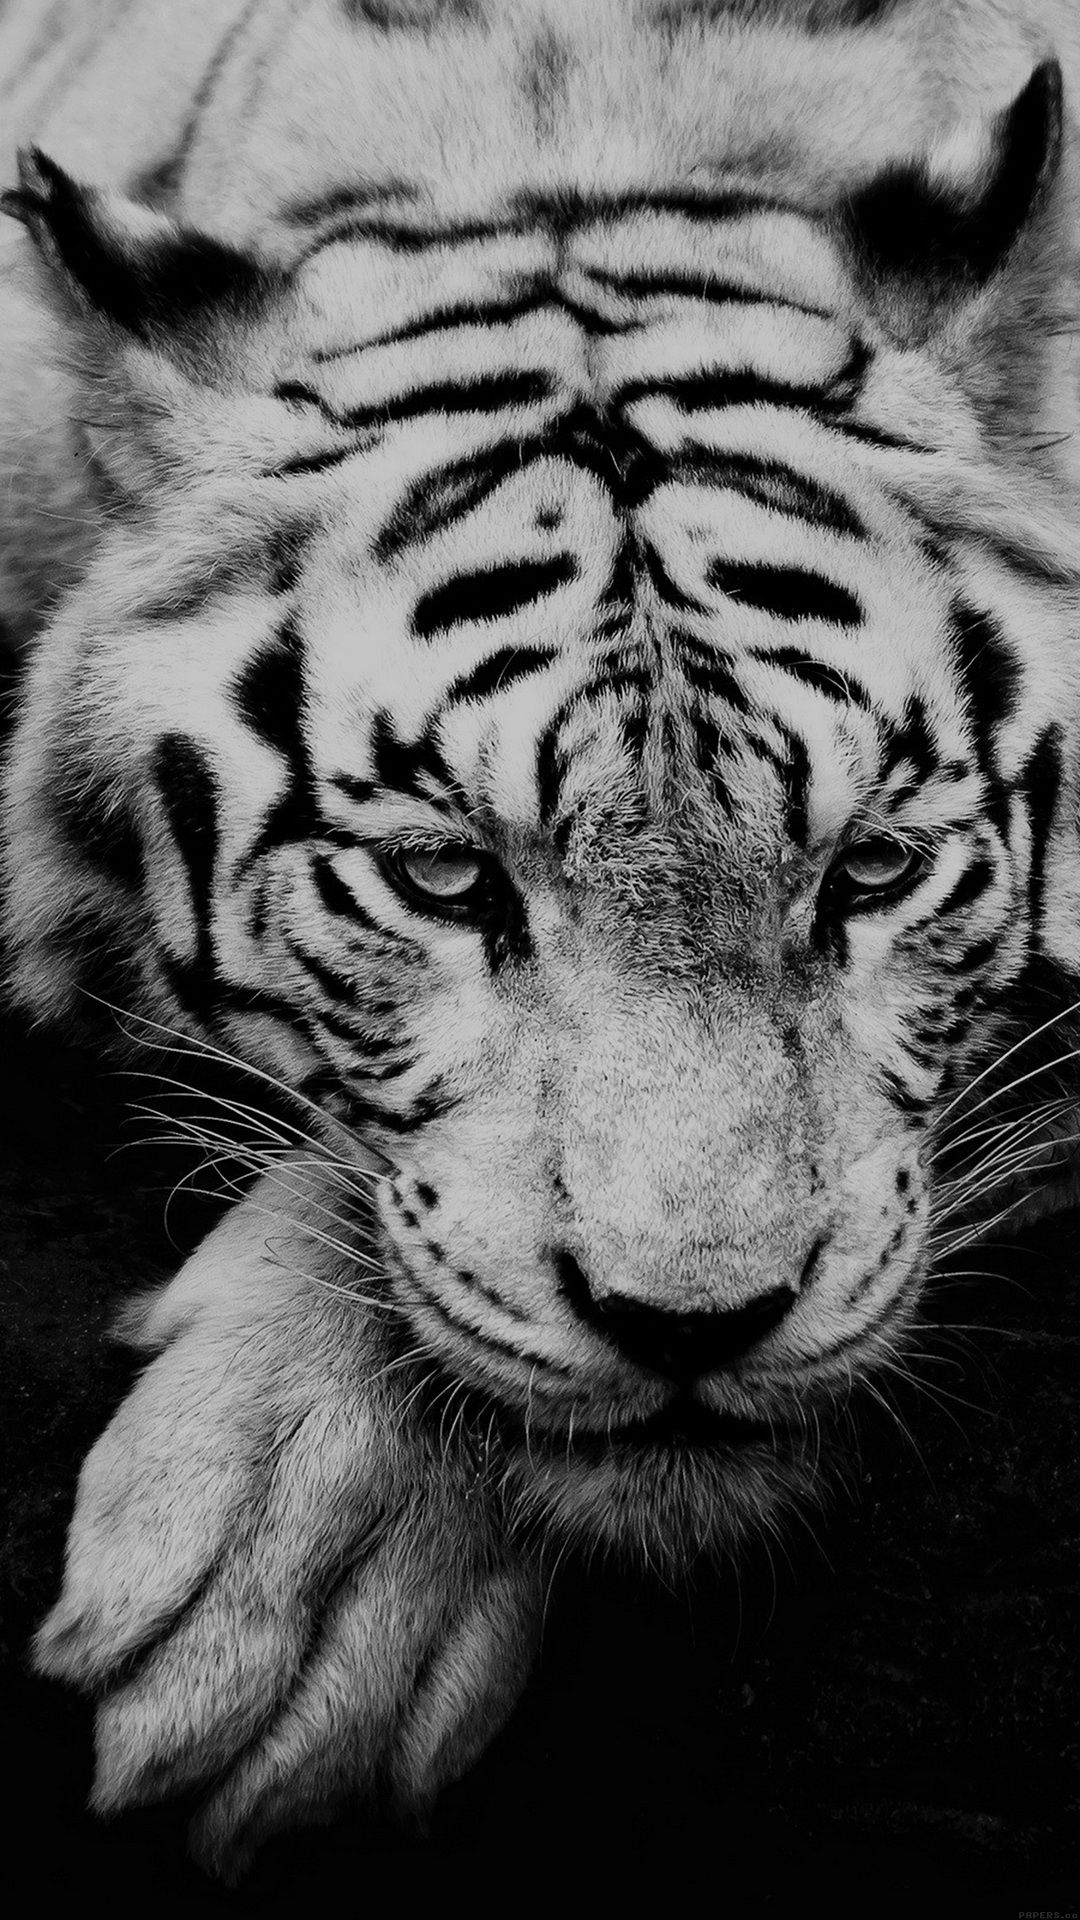 White Tiger Portrait Best Htc M9 Wallpapers Wild Animal Wallpaper Animals Wild Pet Tiger